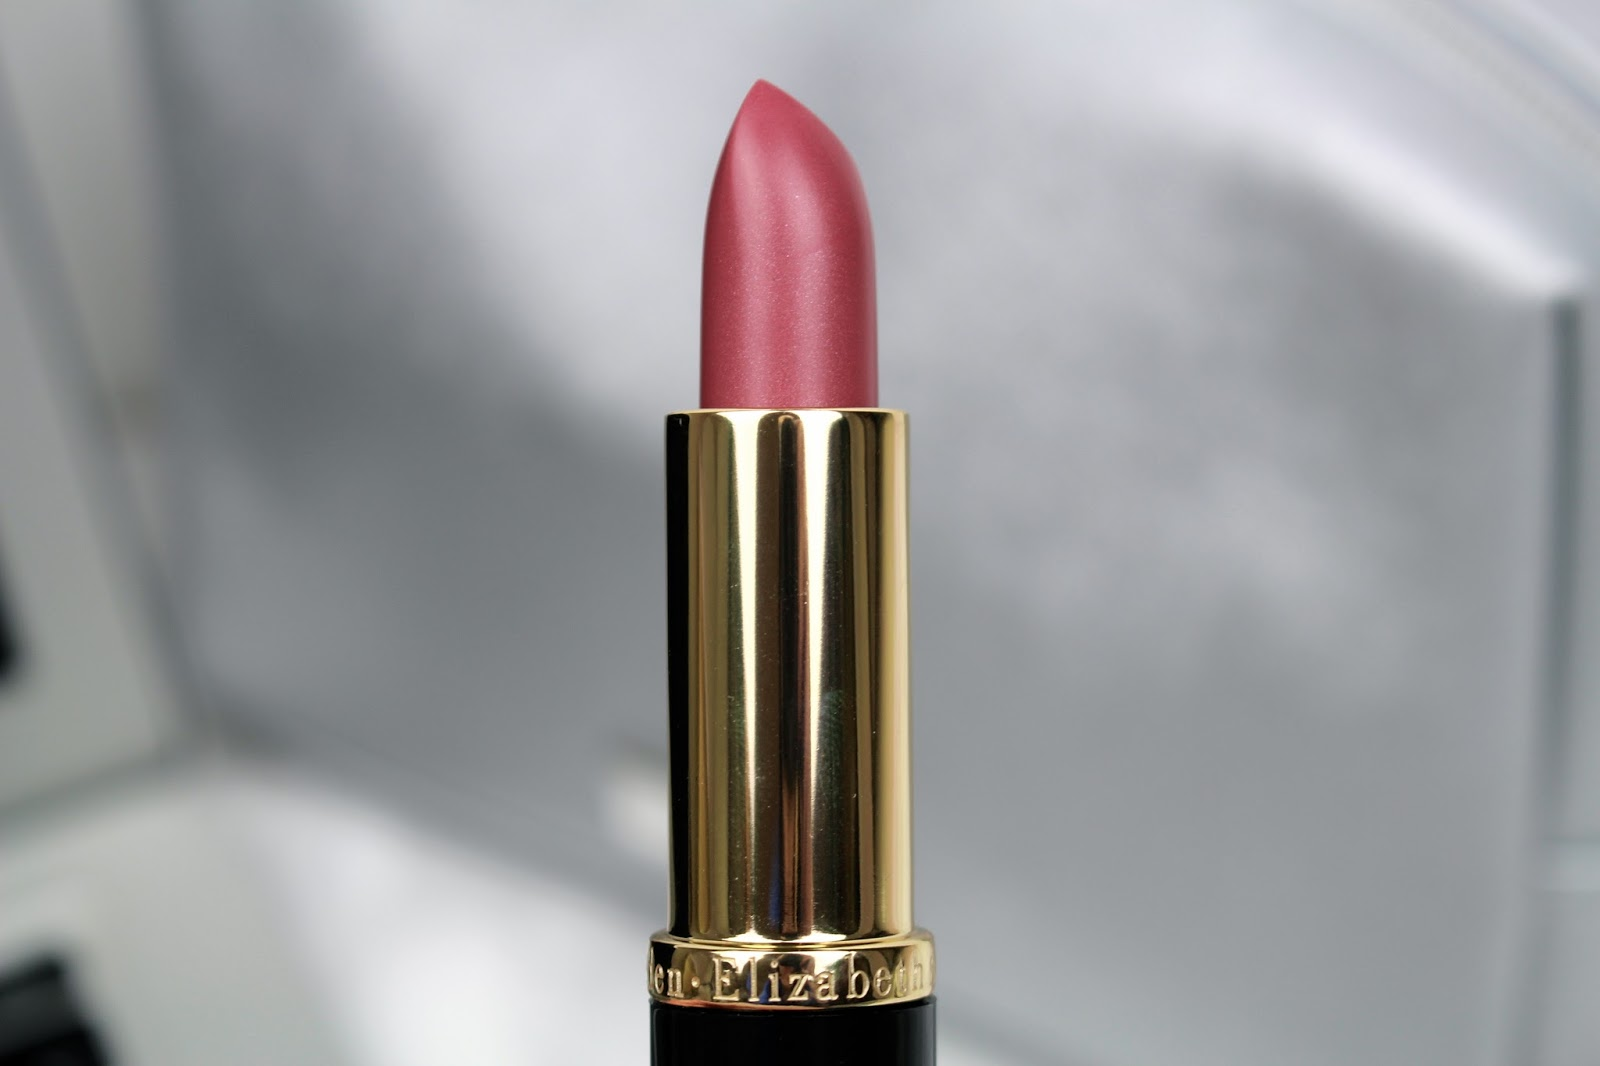 Elizabeth Arden Rose lipstick beauty blog review